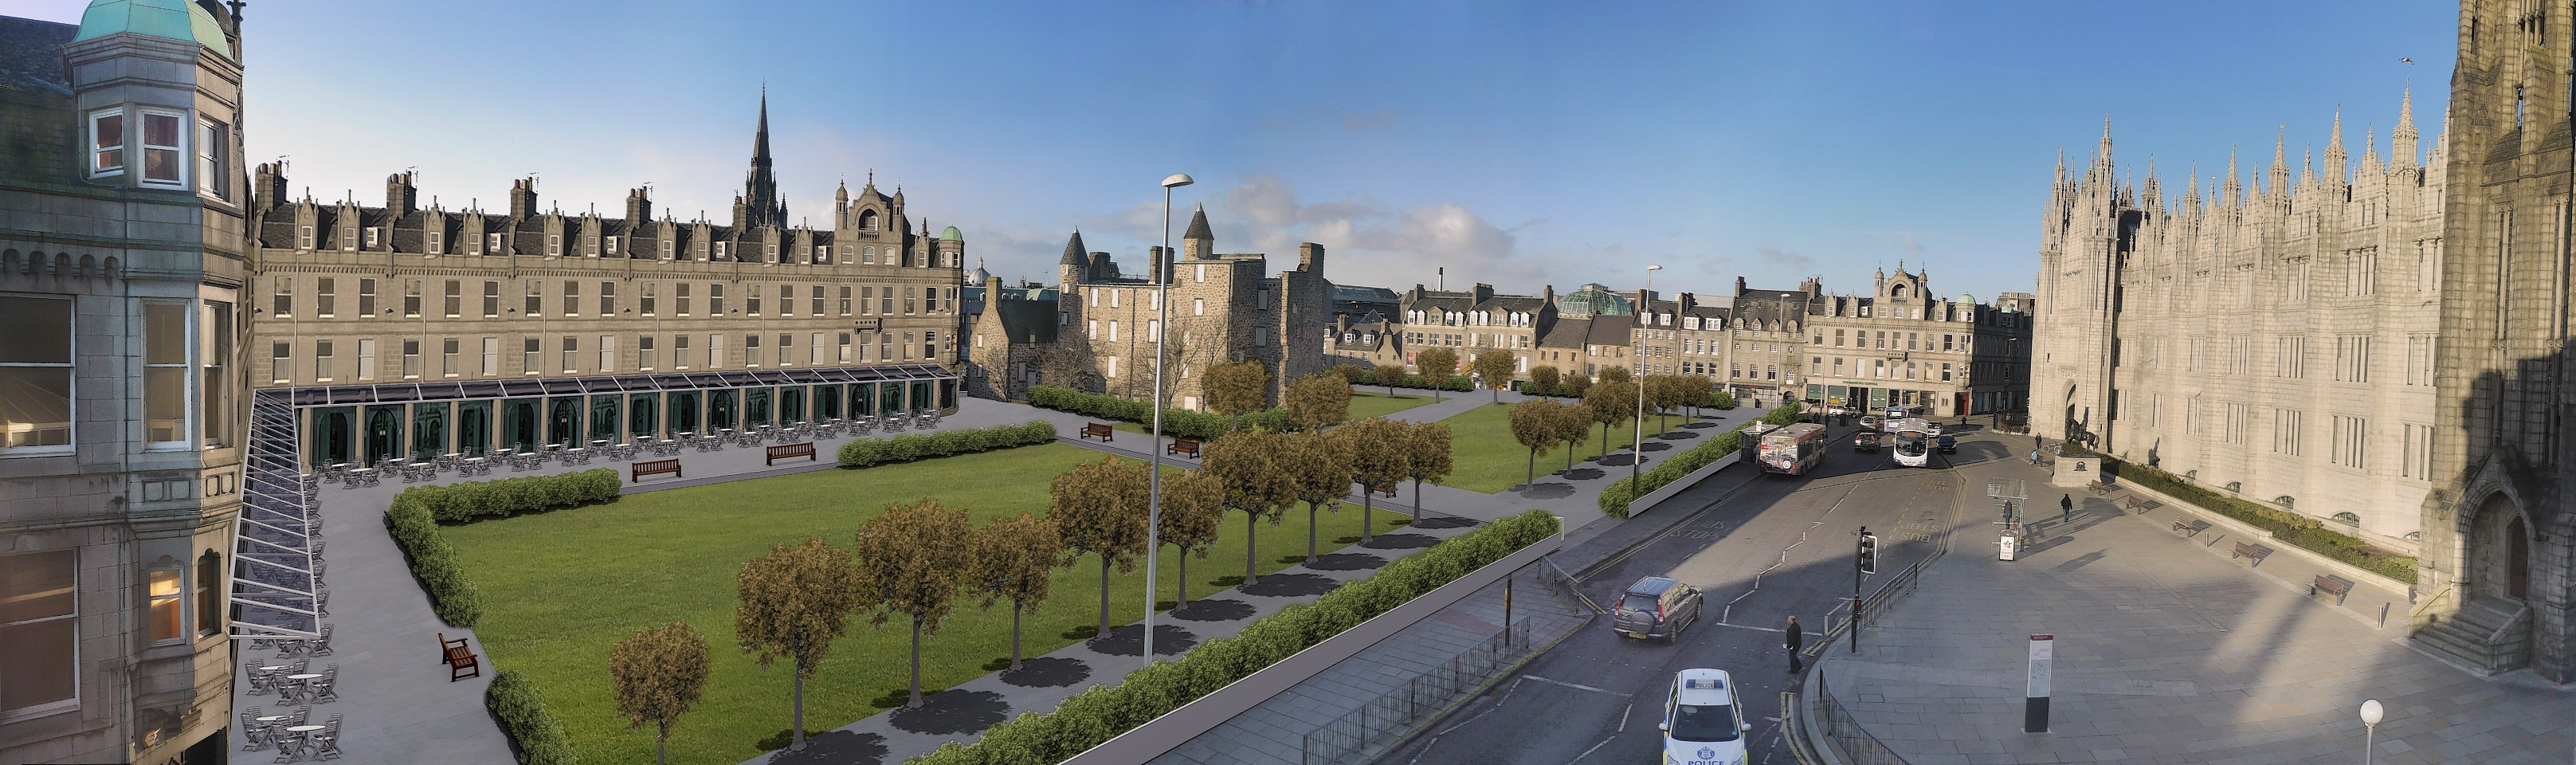 The plans suggested by the Marischal Square protesters